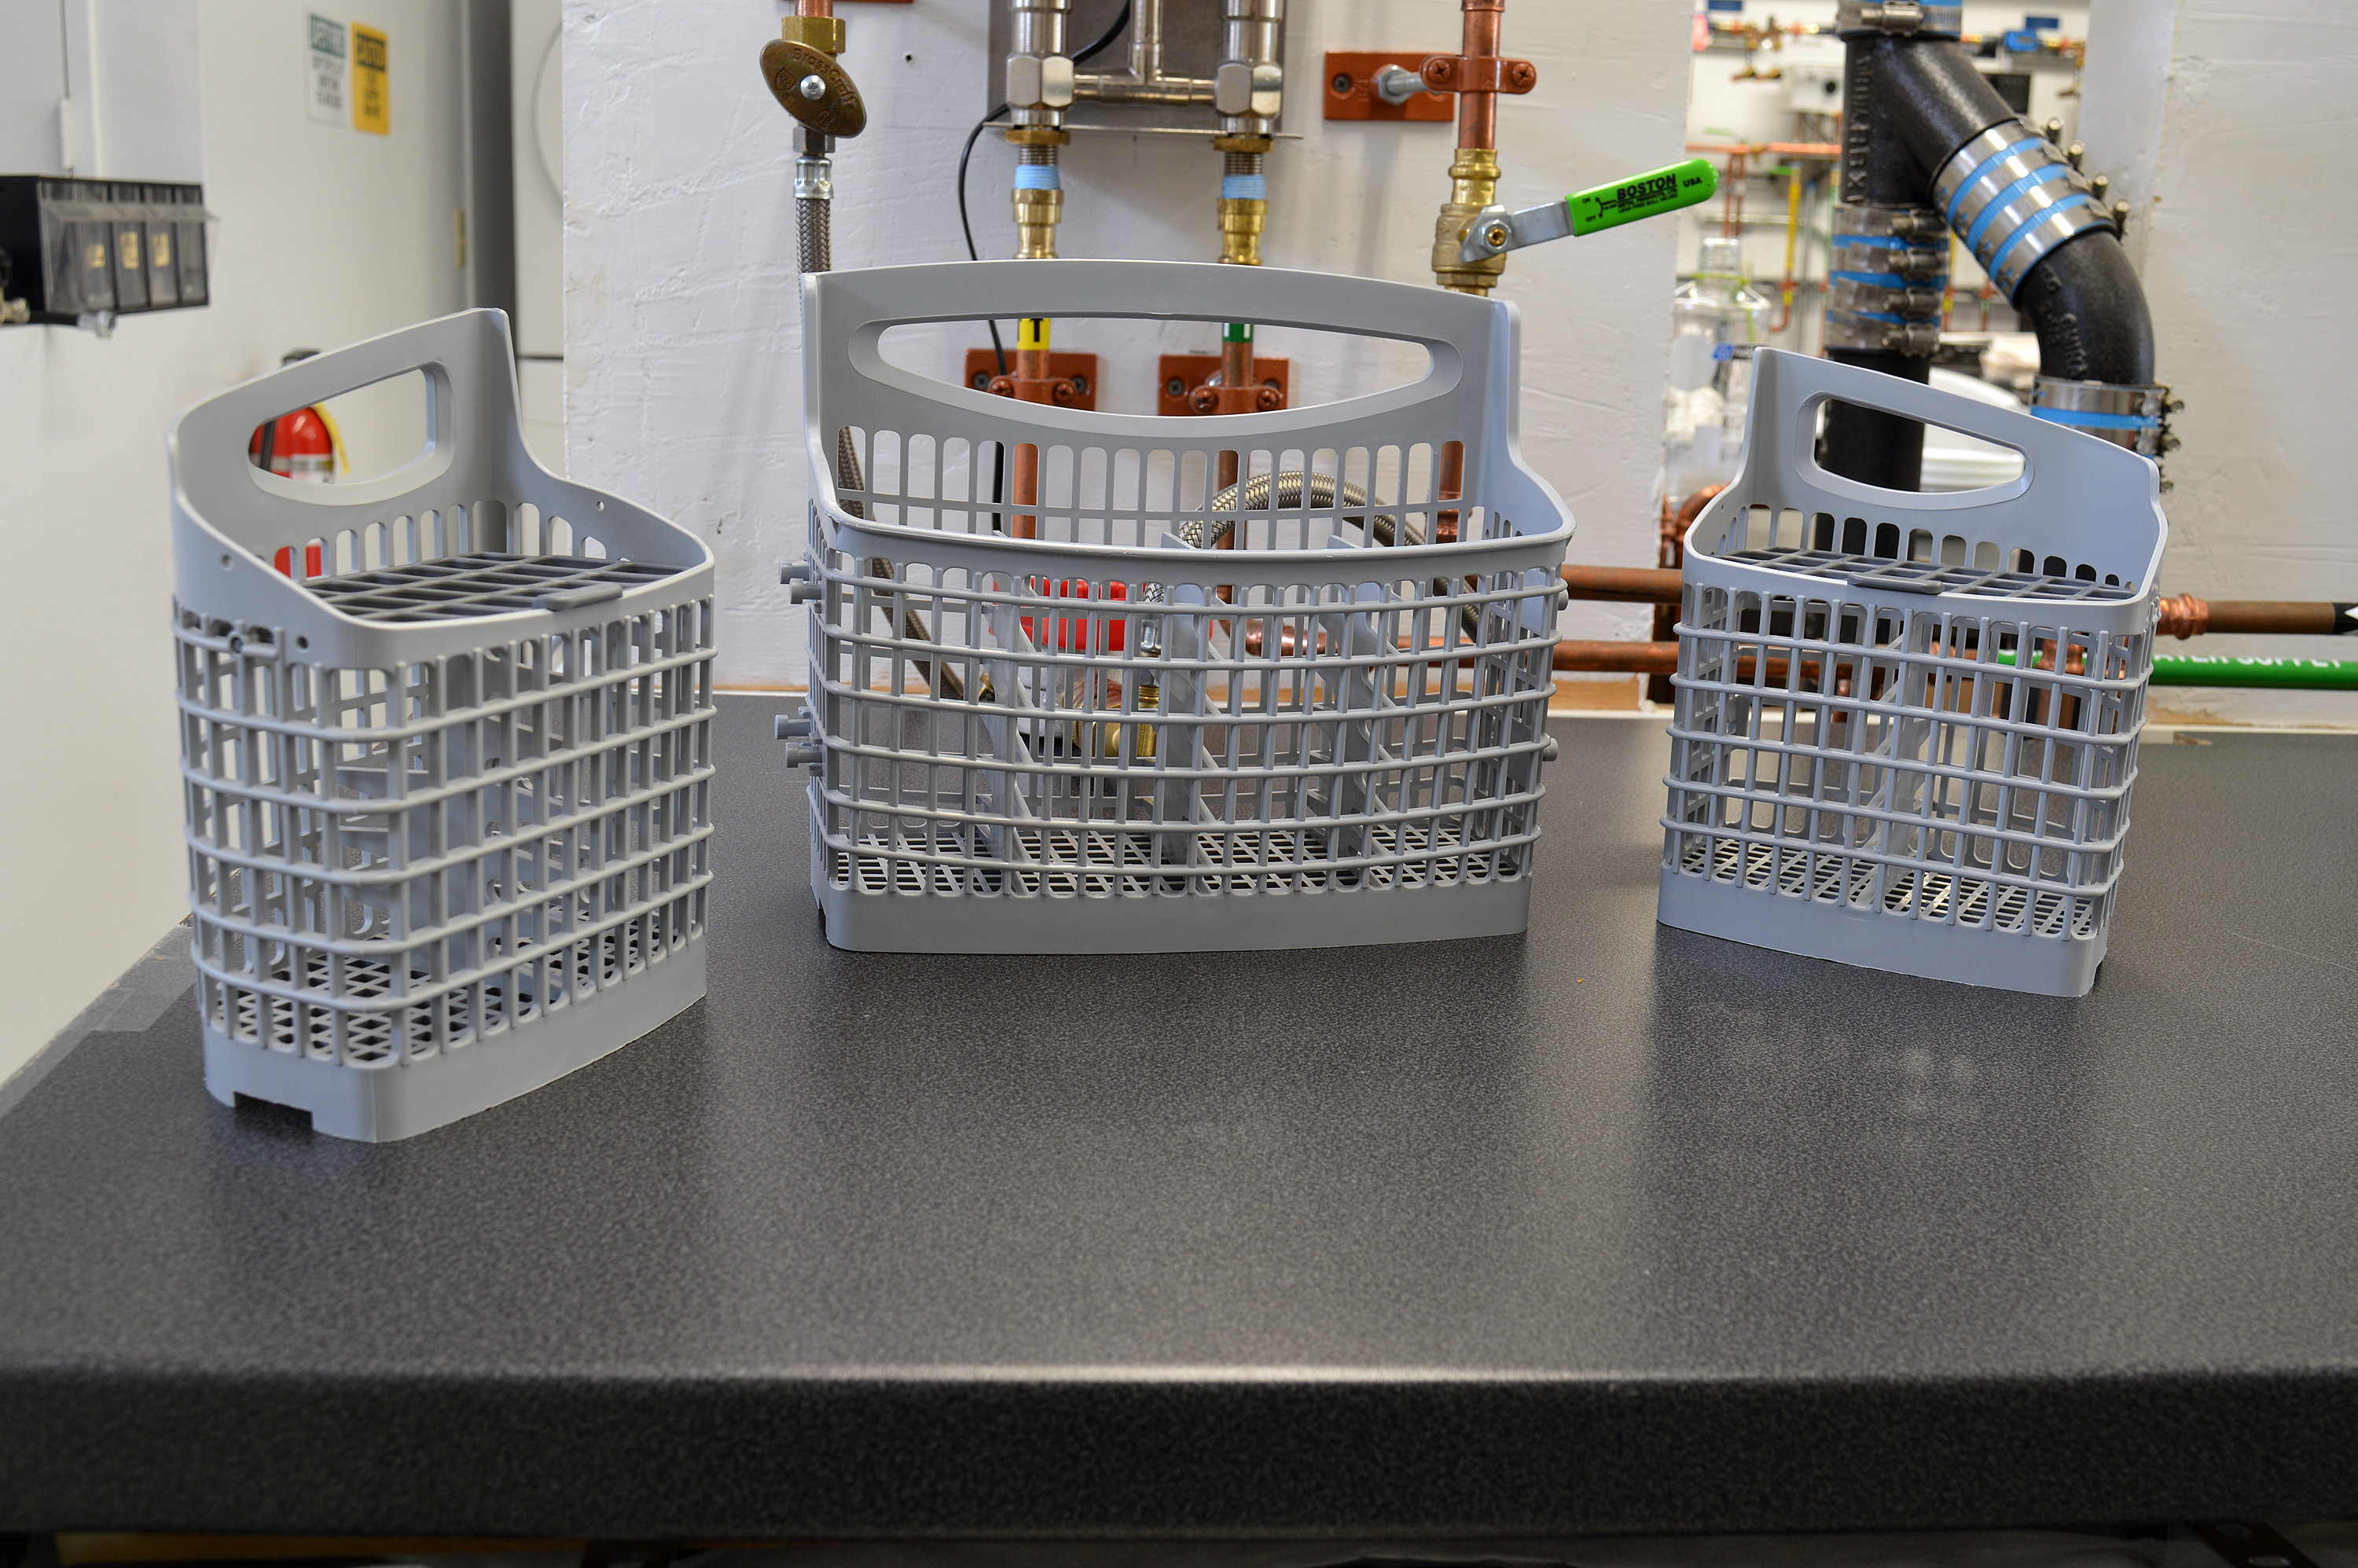 Frigidaire Gallery FGID2466QF separated three-part cutlery basket